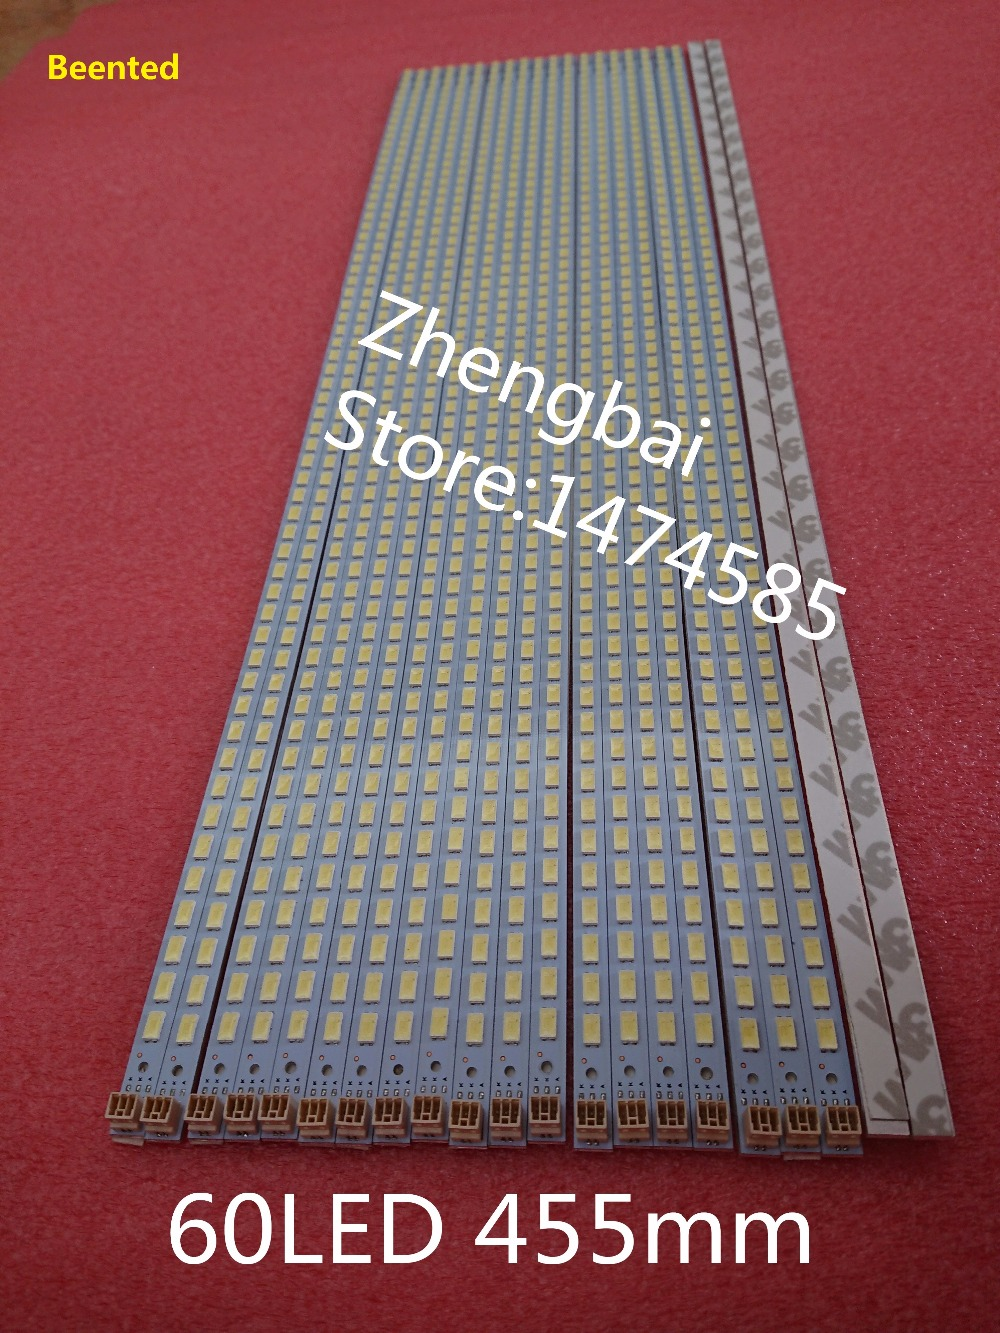 Beented Part NEW 50 PiecesX60LED 40INCH-L1S-60 LED Back Strip For LTA400HM13 40-DOWN LJ64-03029A 455mm